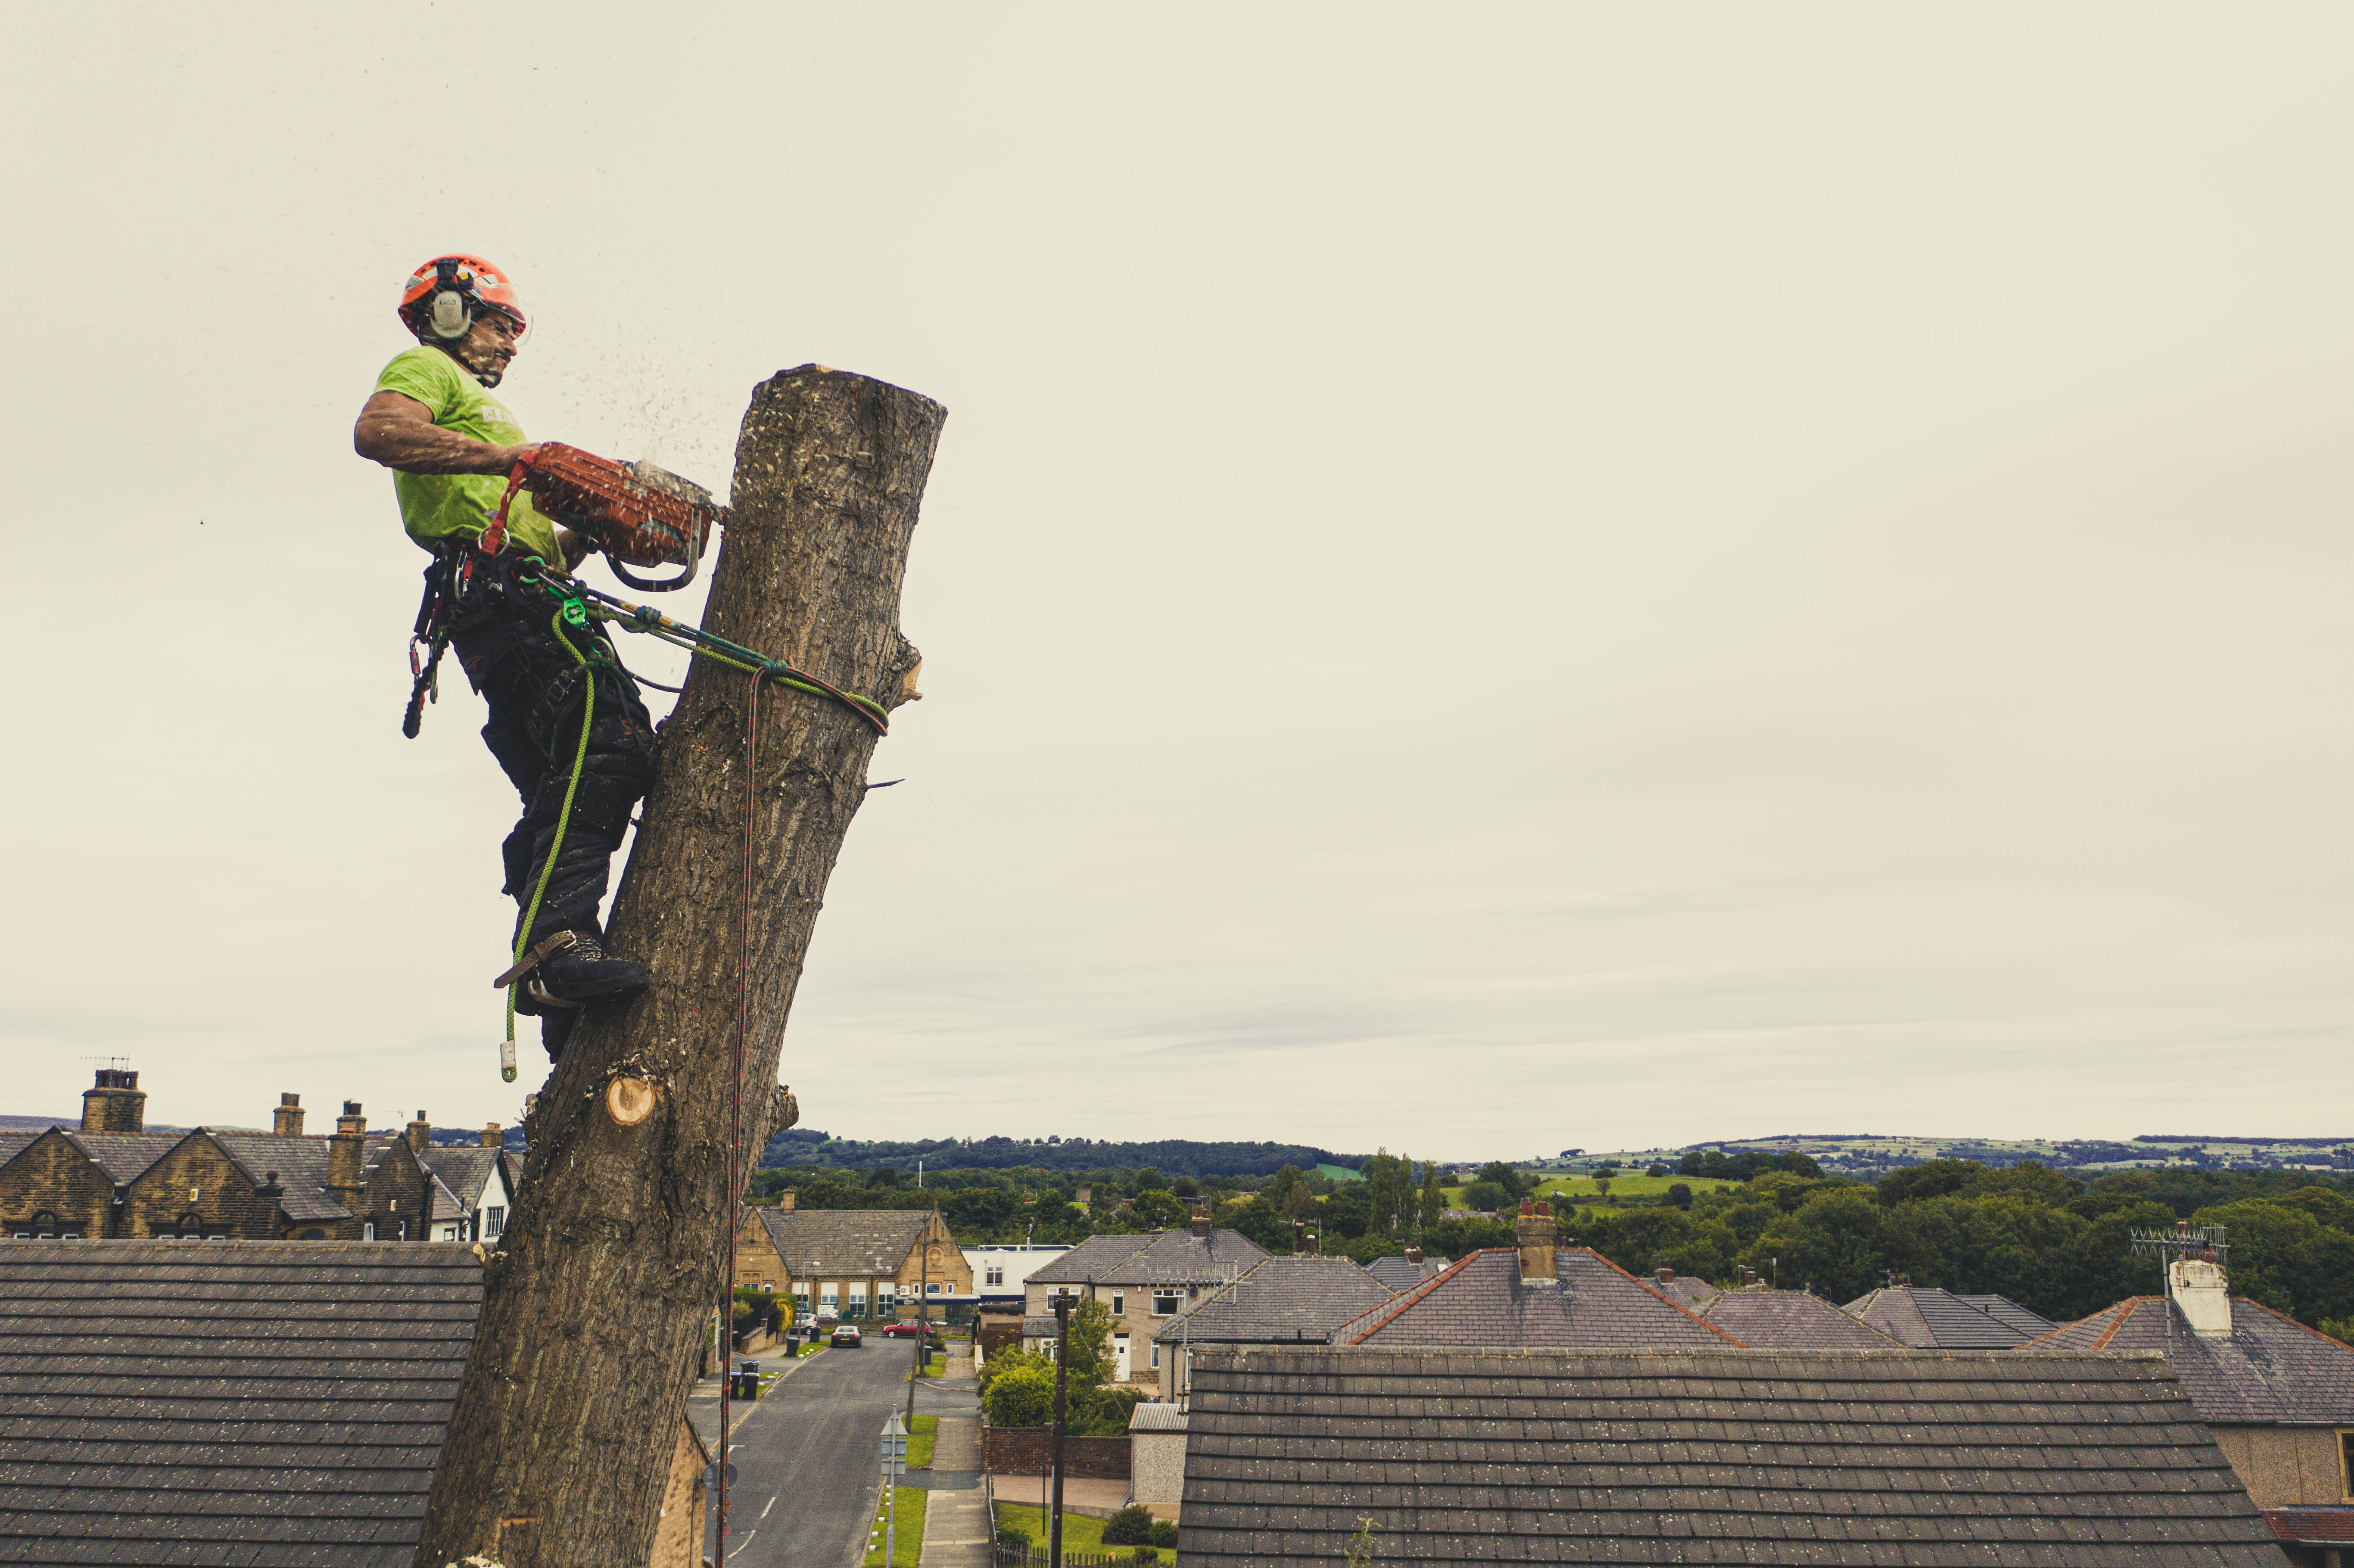 West-Yorkshire-Tree-Dismantle-5